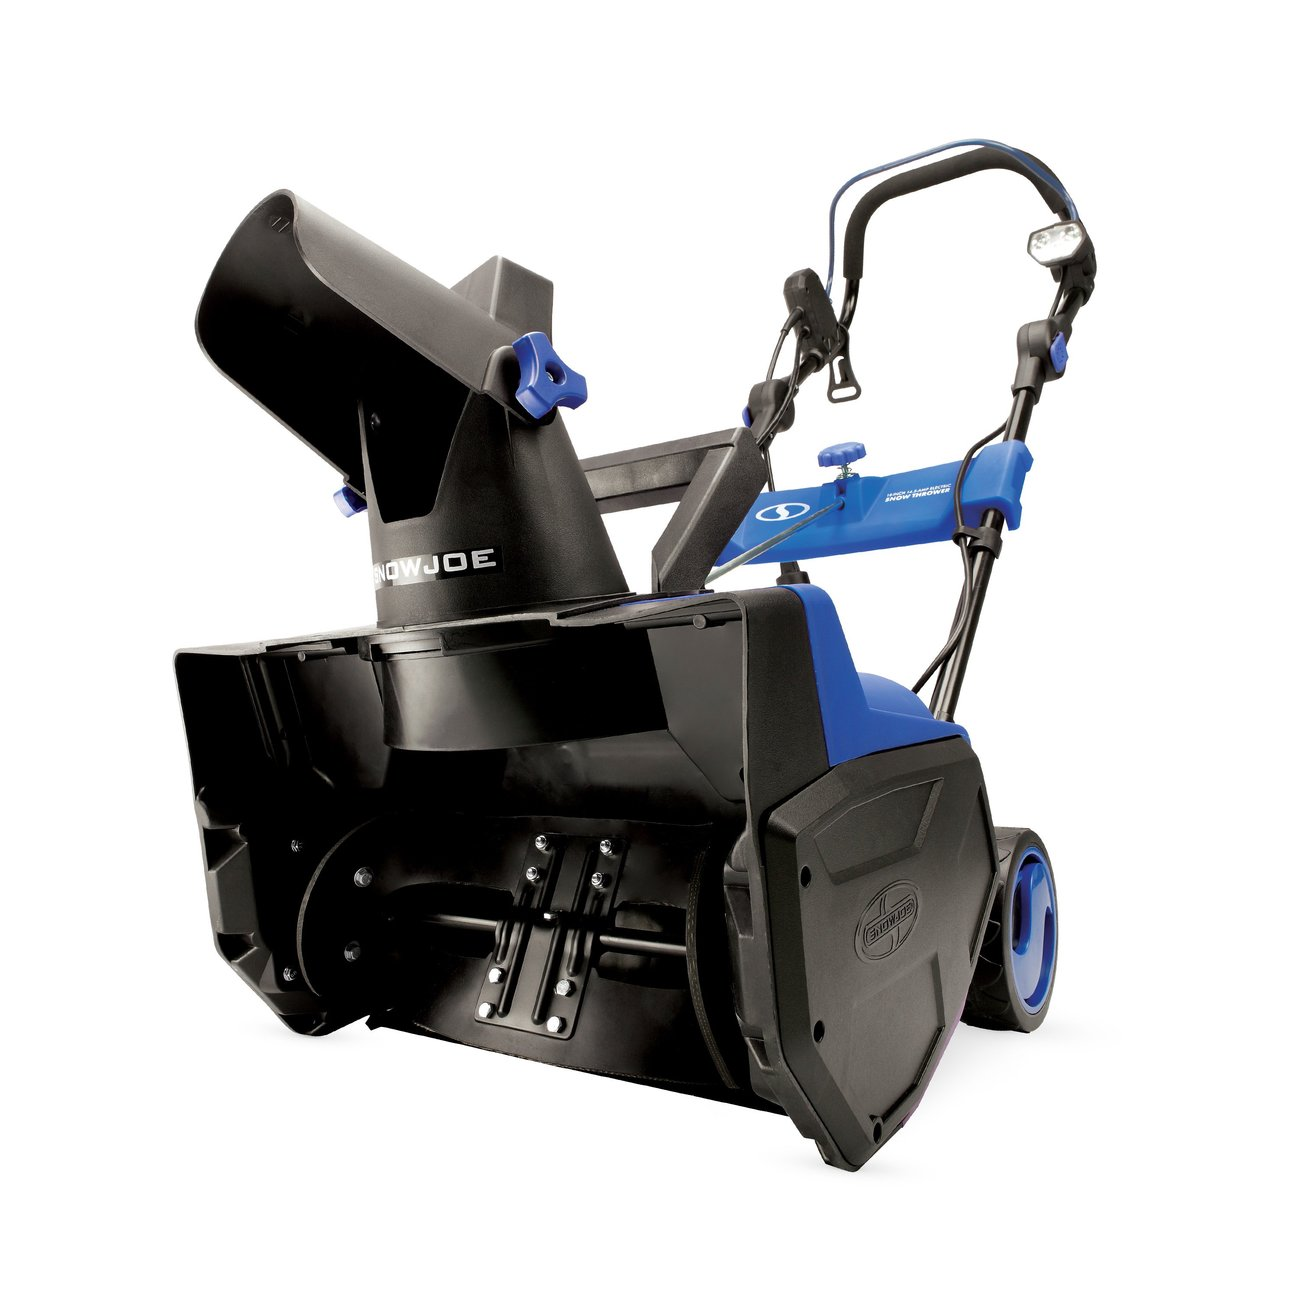 Snow Joe Corded Electric Single Stage Snow Thrower 18 In 14.5 Amp Motor LED Lights